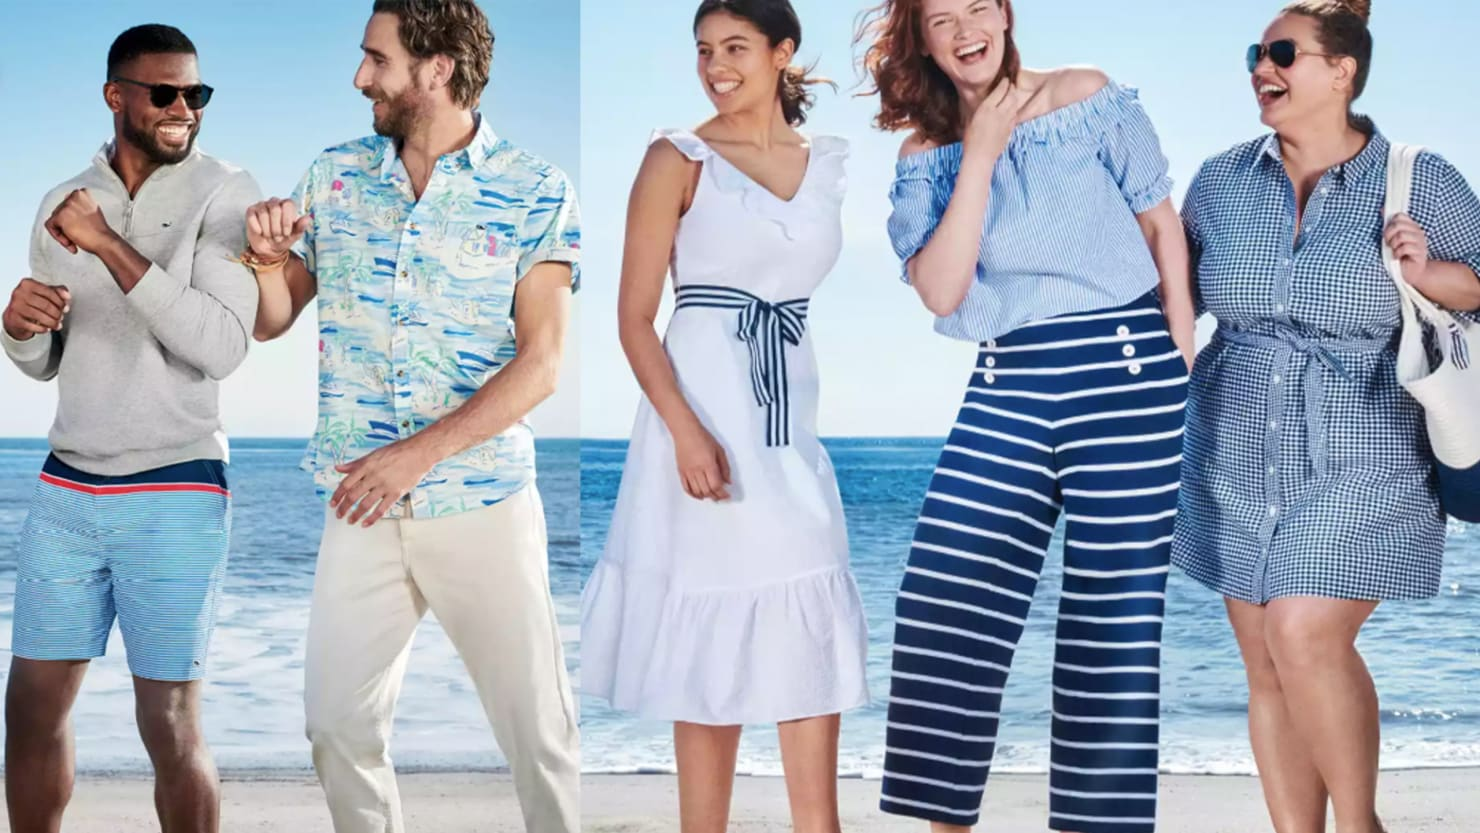 The Target, Vineyard Vines Collaboration Brings The Iconic Whale Brand to Summer Clothes and Houseware